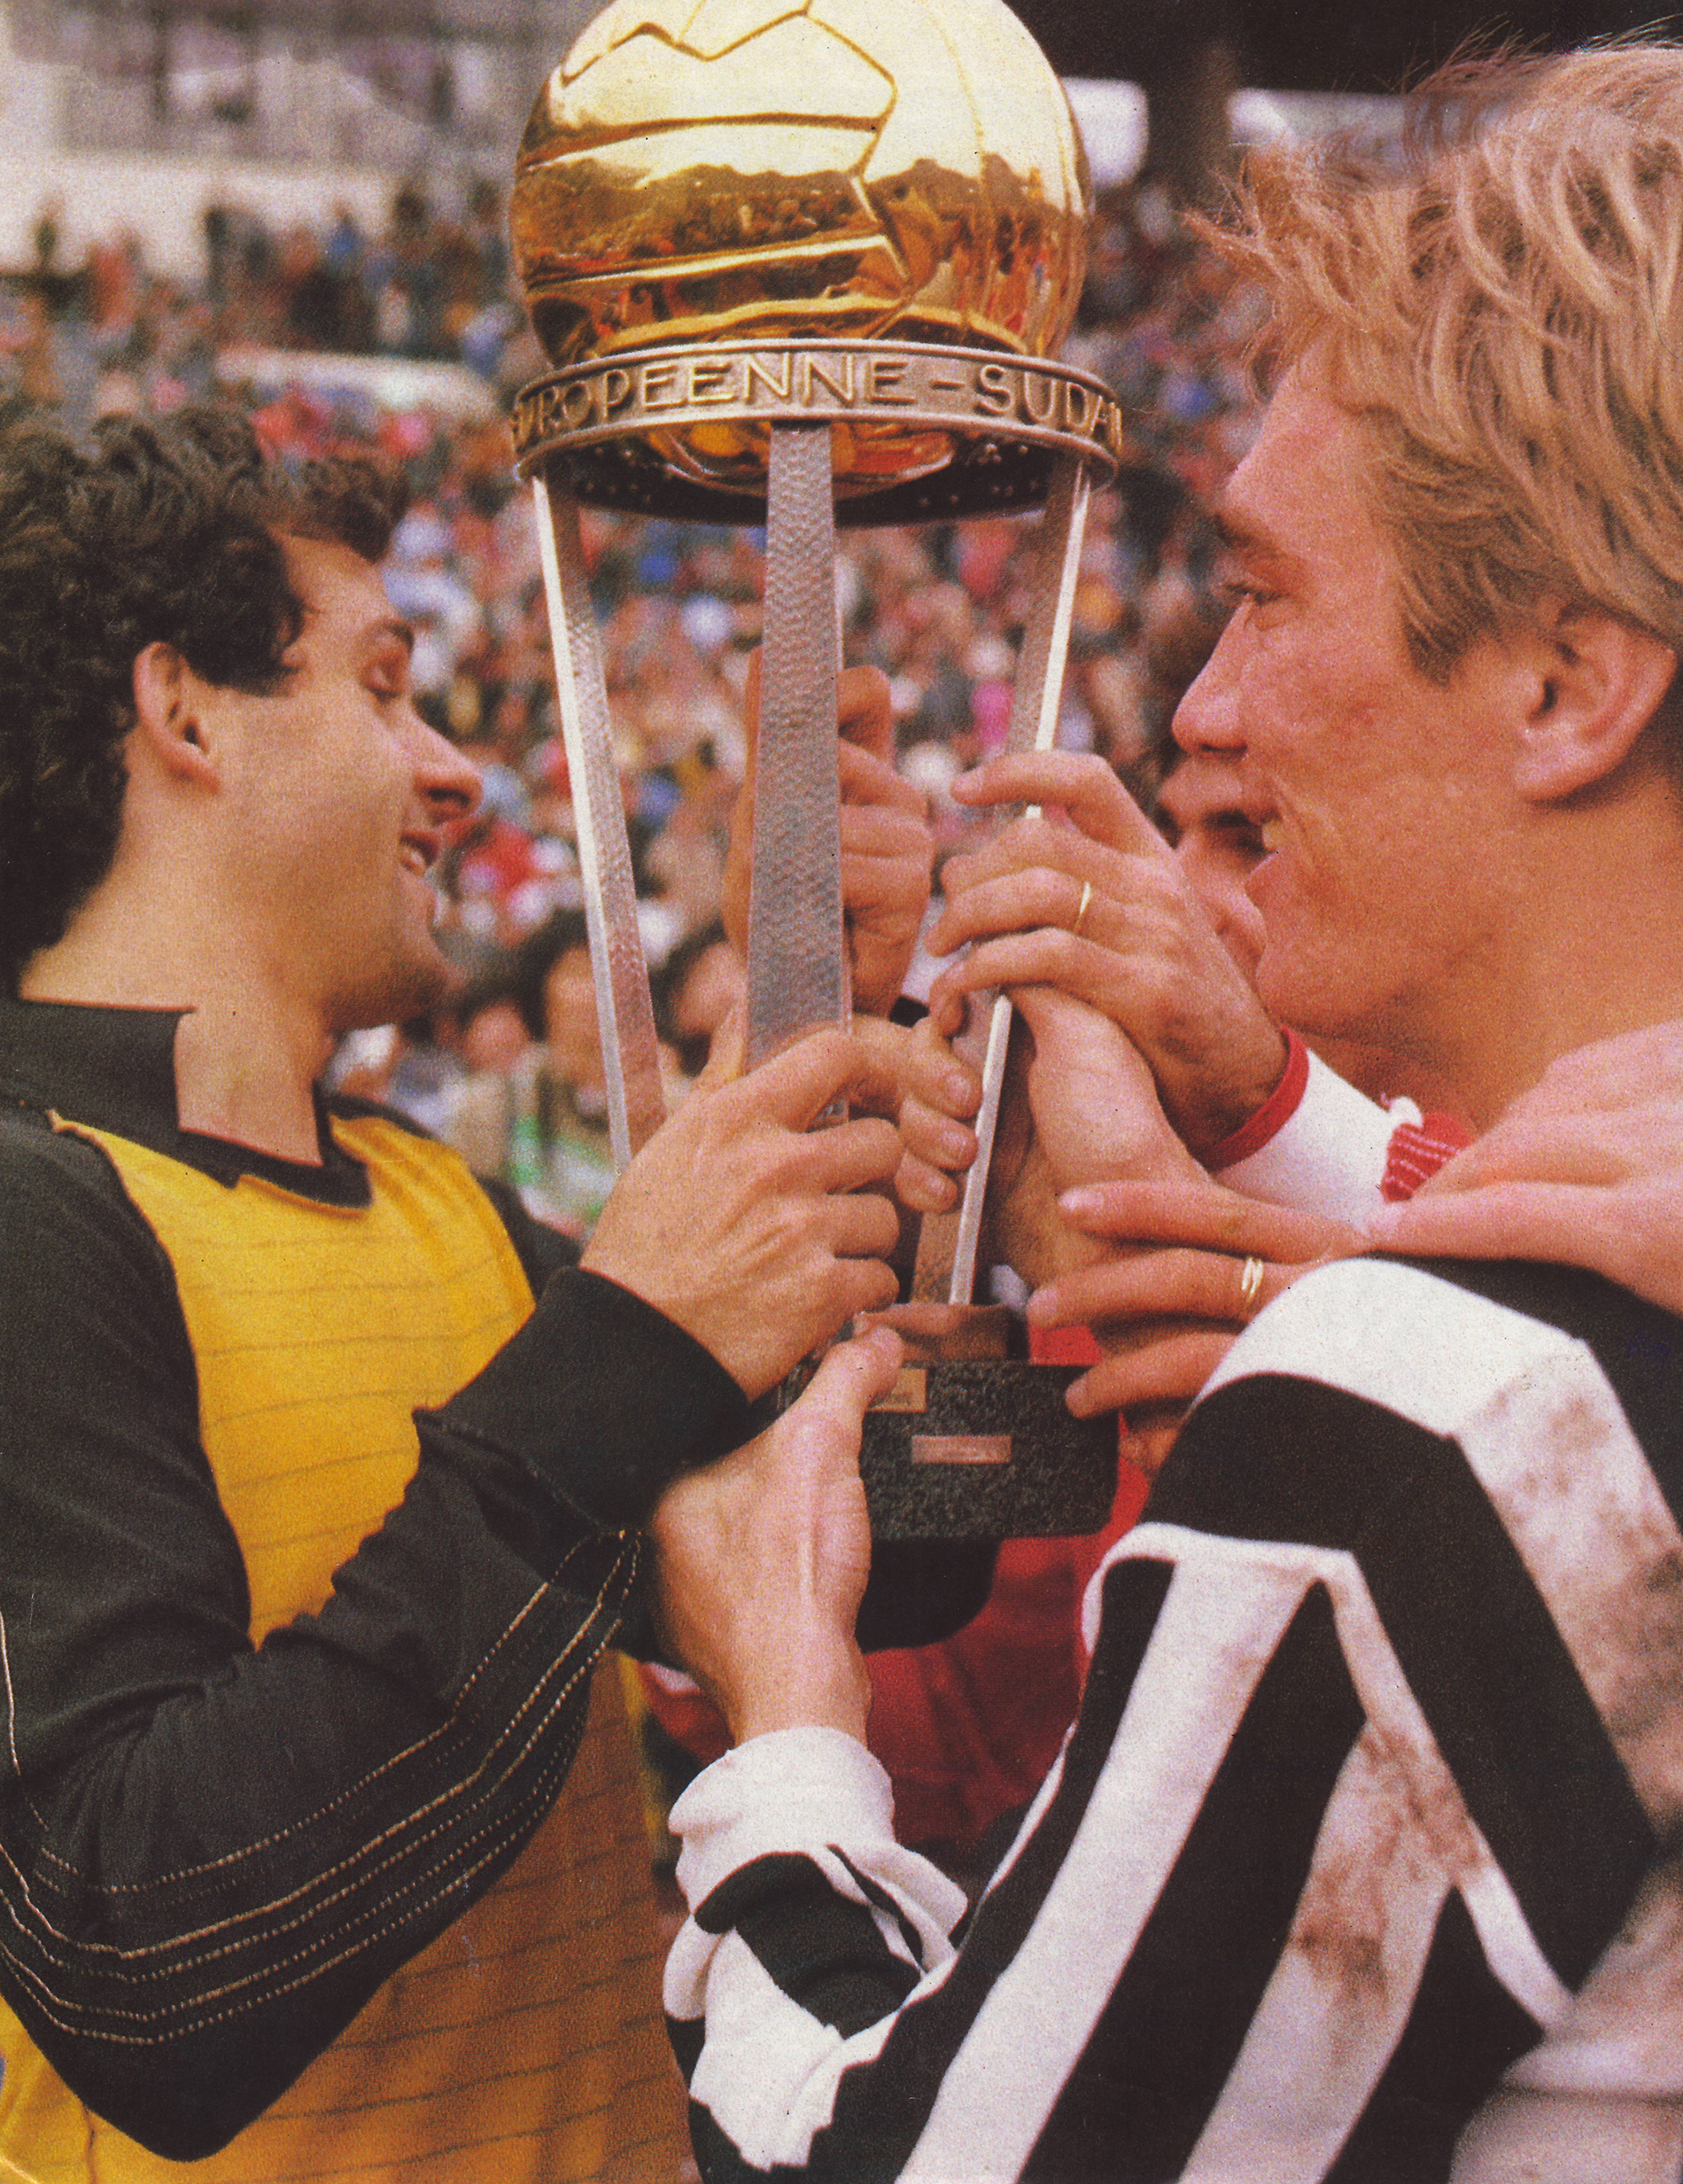 Juventus - Argentinos Jr, Platini and Bonini with the Cup